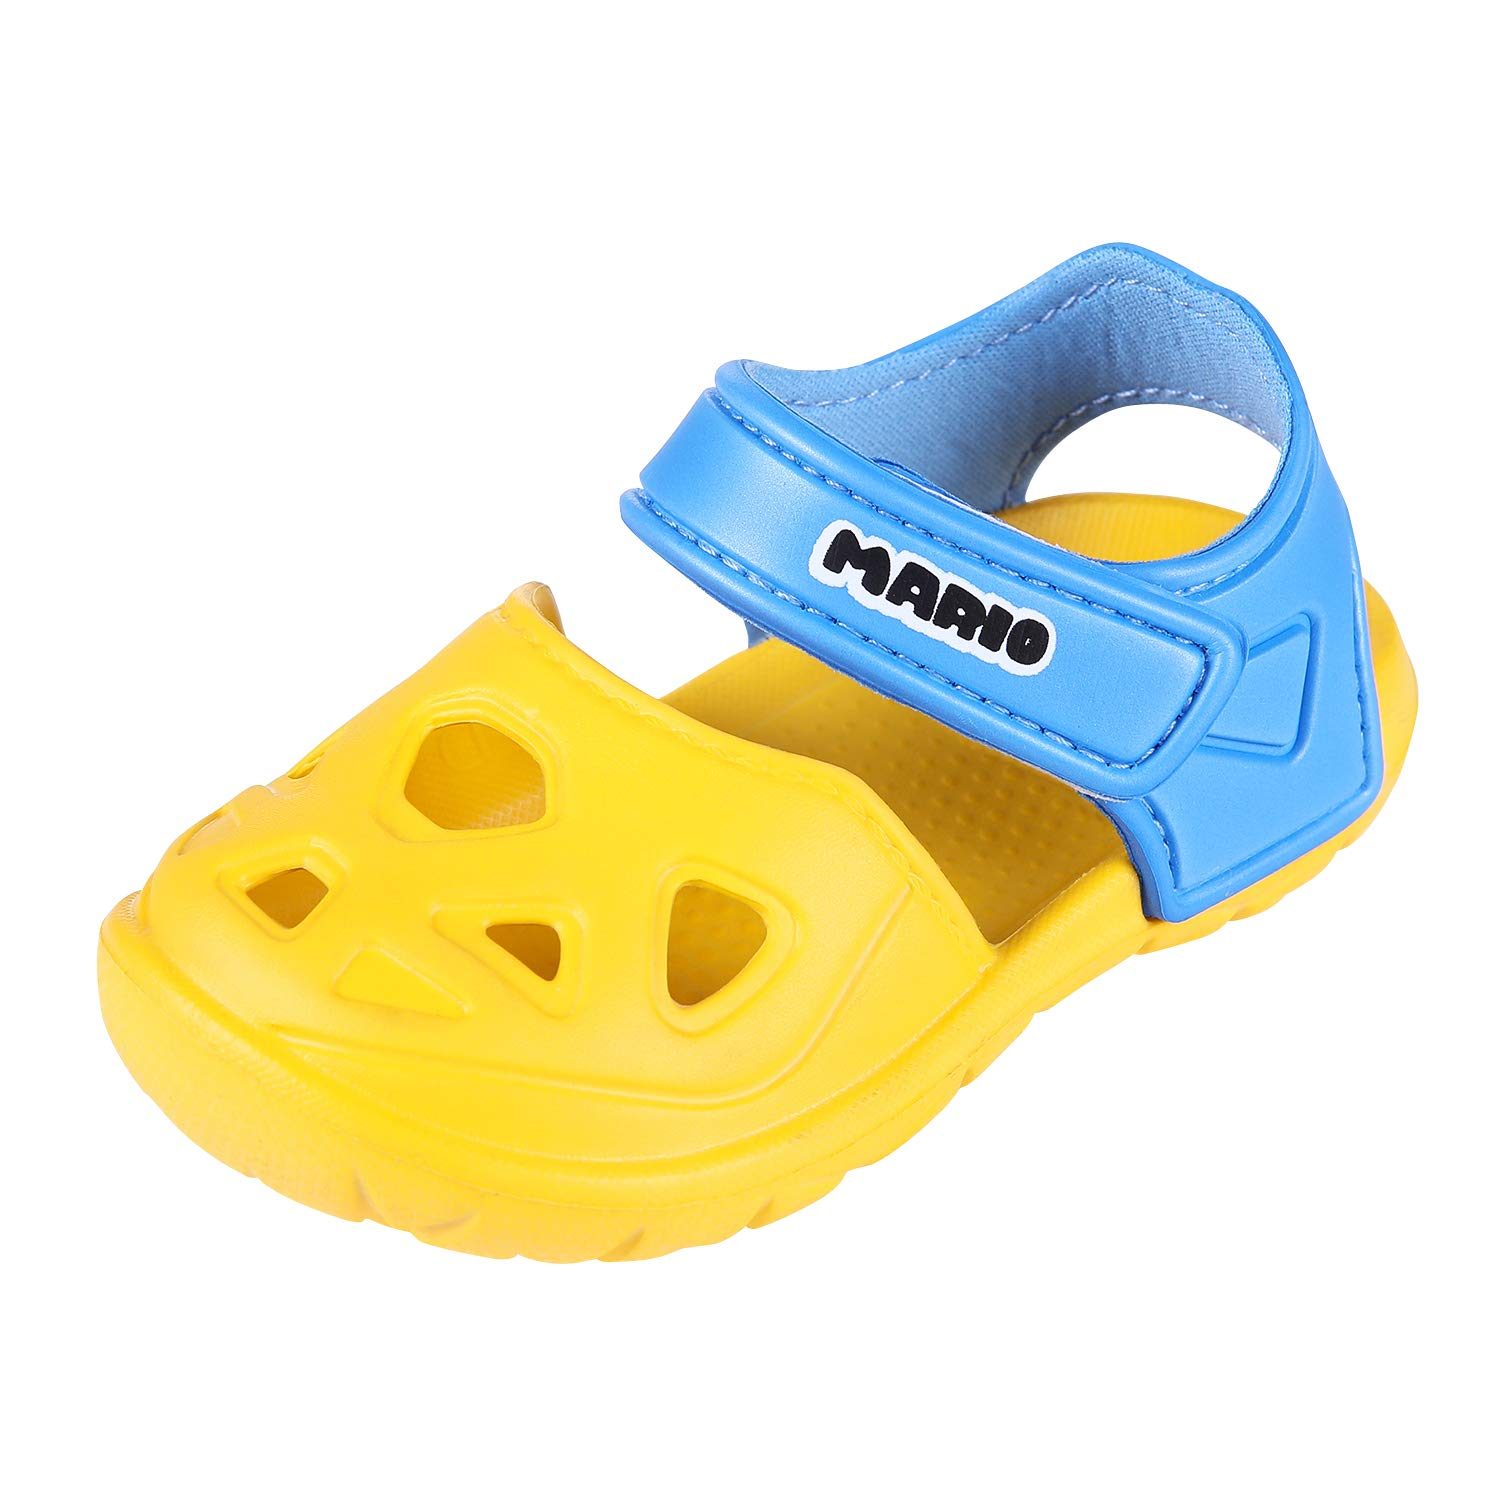 Comwarm Baby Girl Boy Summer Shoes Closed Toe Lightweight Sandals Anti-Slip Beach Shoes for Toddler 1-5 Years Old